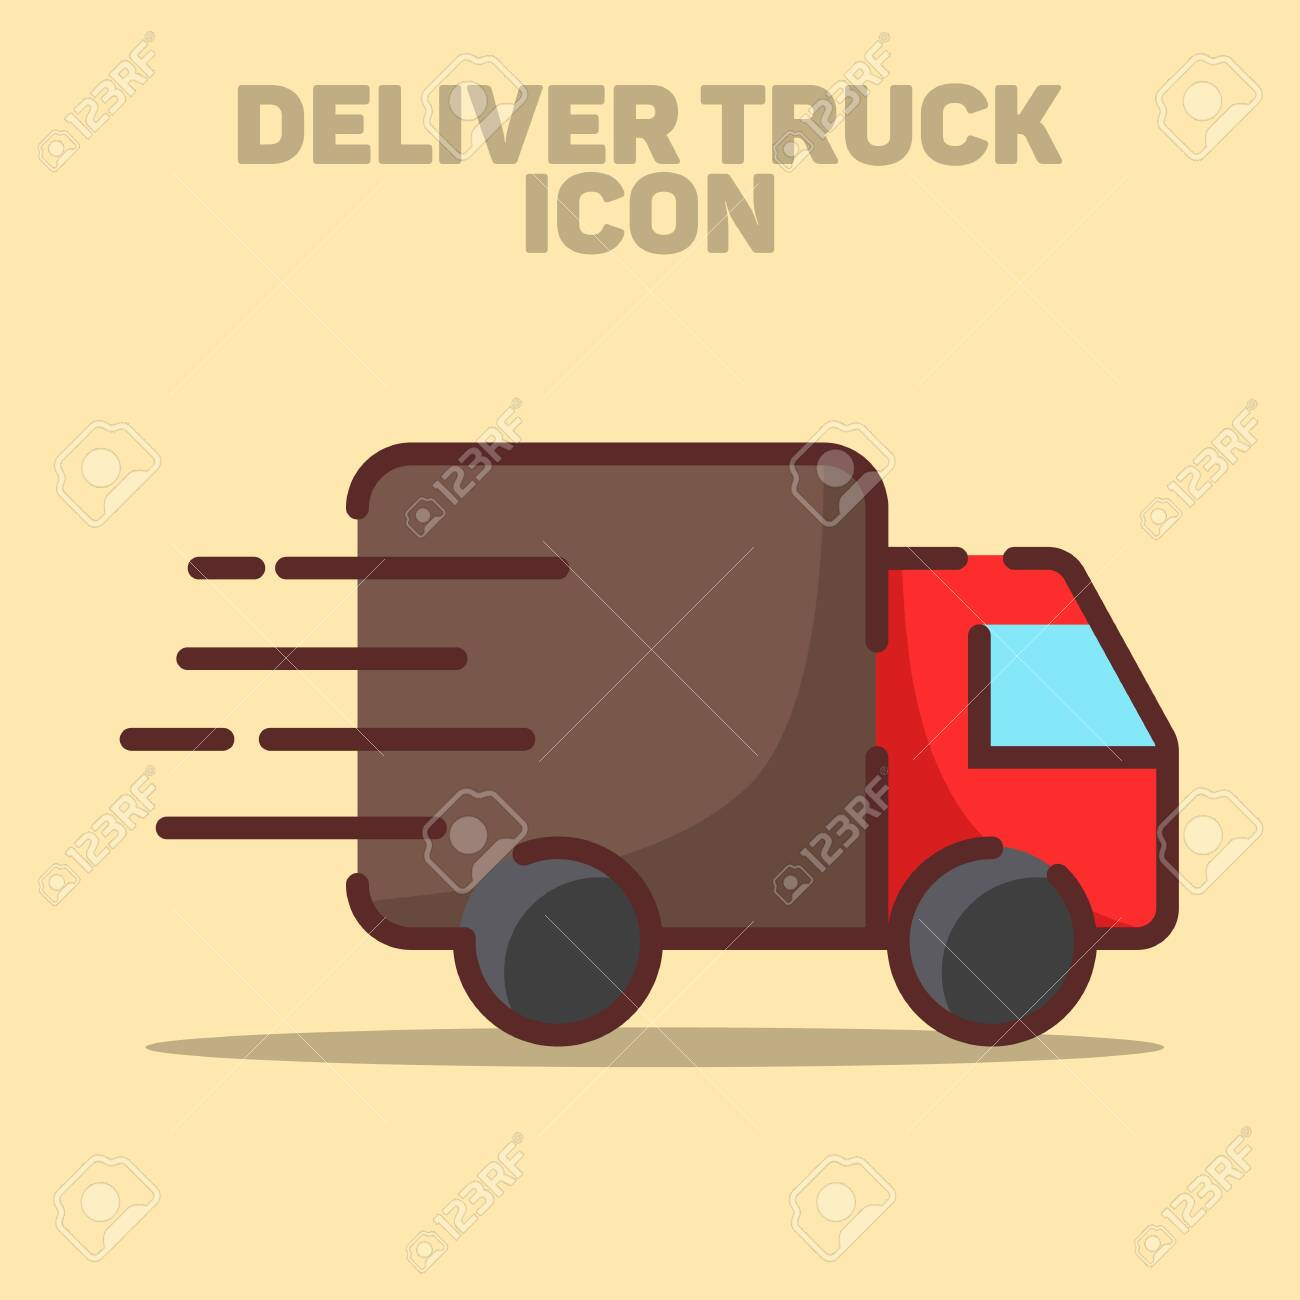 Isolated Delivery Truck Icon Vector Illustration - 132041077